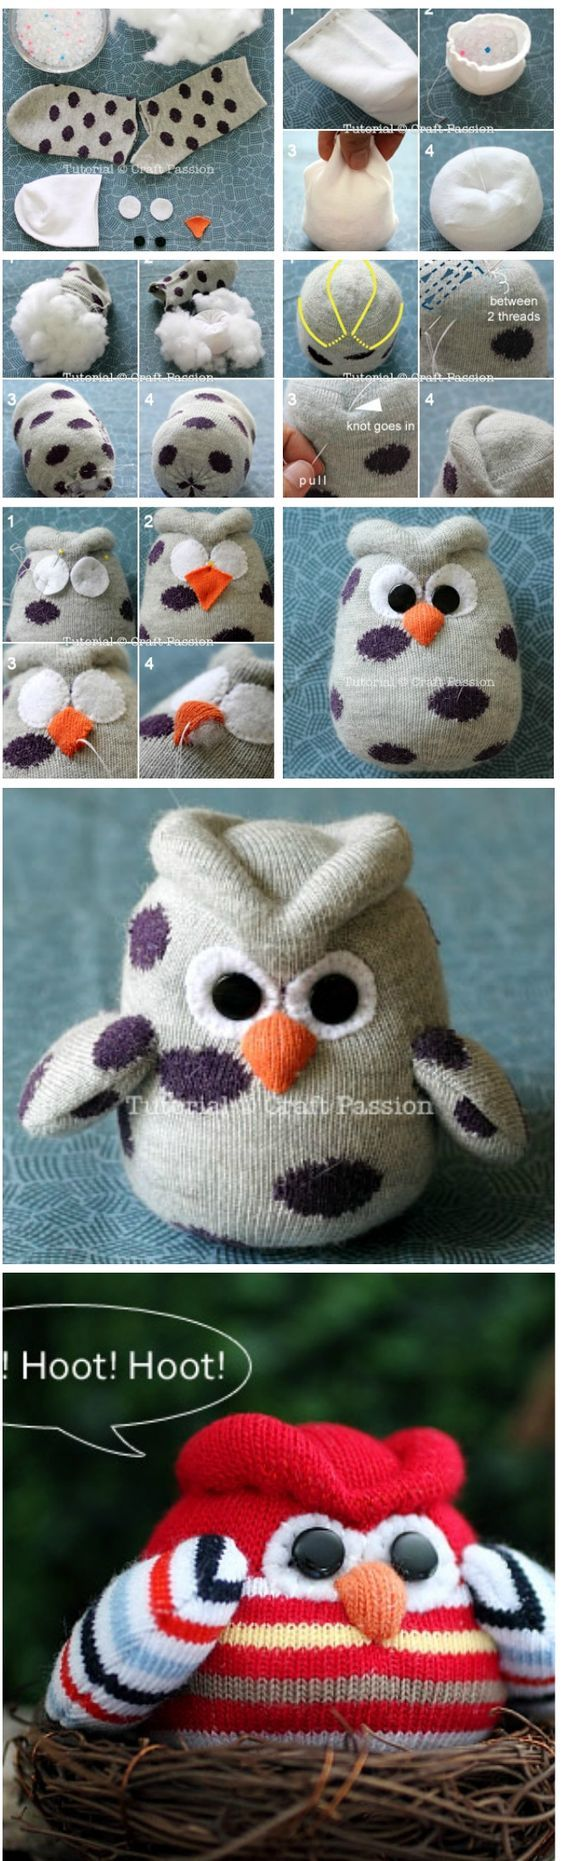 Sock Owl Craft With Easy To Follow Video   The WHOot: